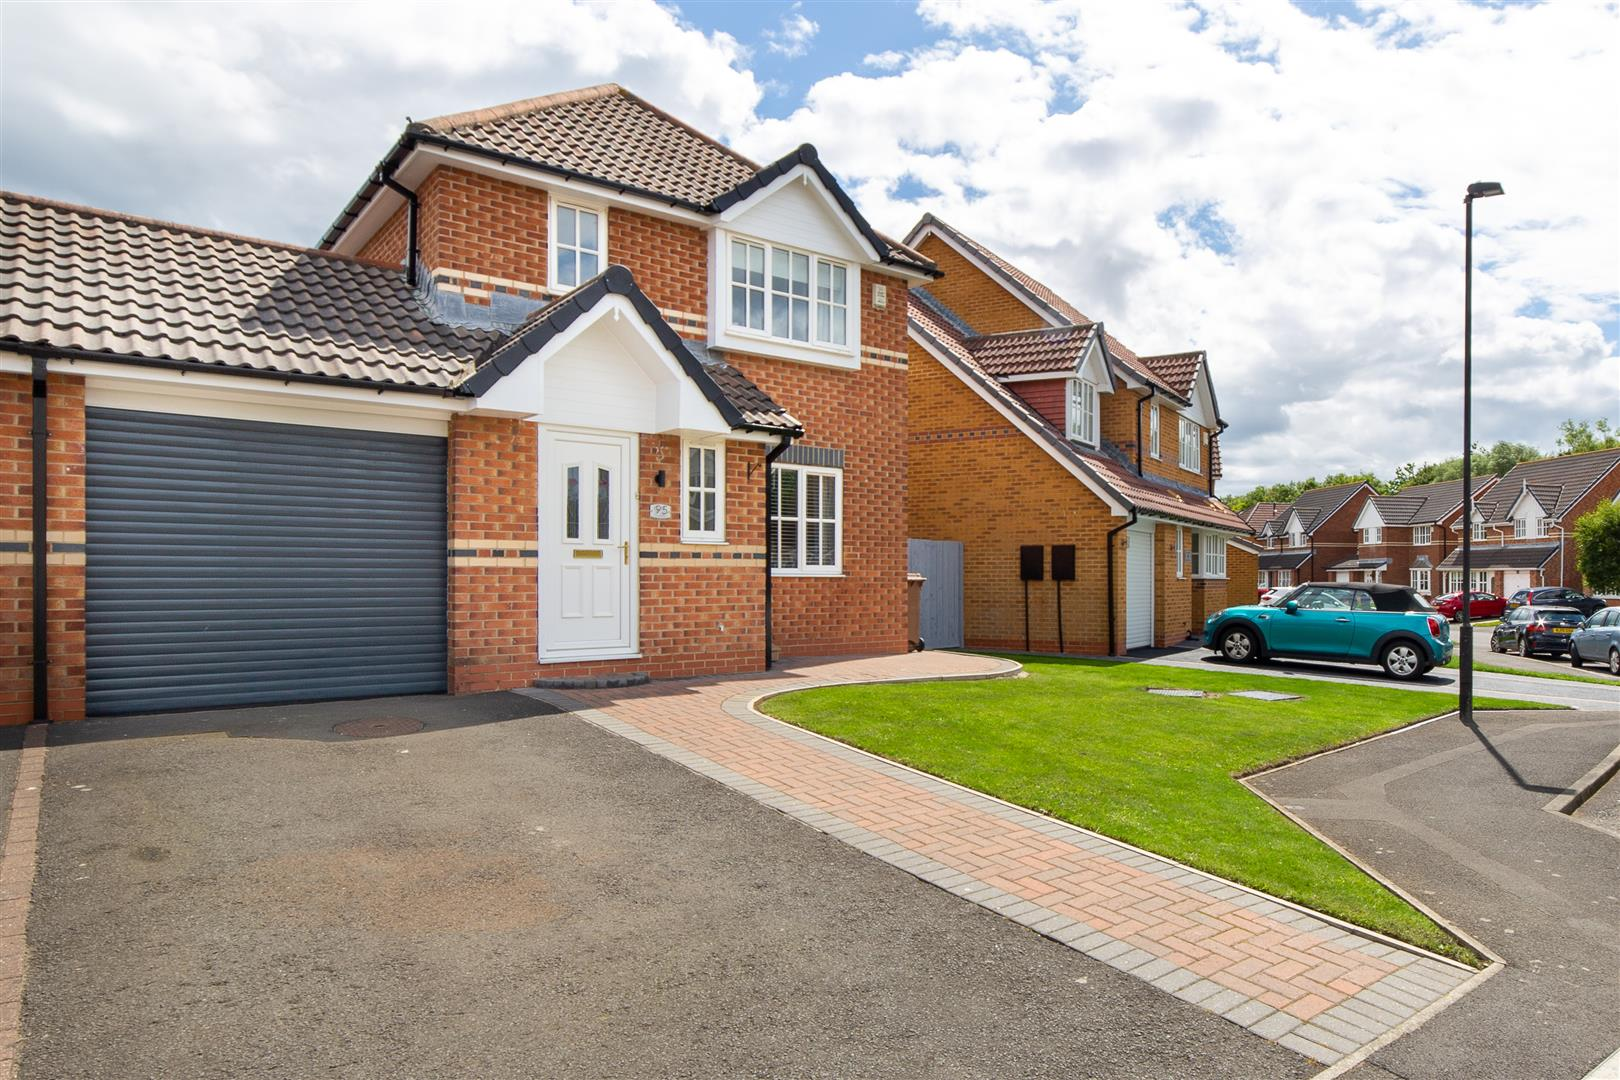 3 bed detached house for sale in Northumberland Park, NE27 0RF  - Property Image 1